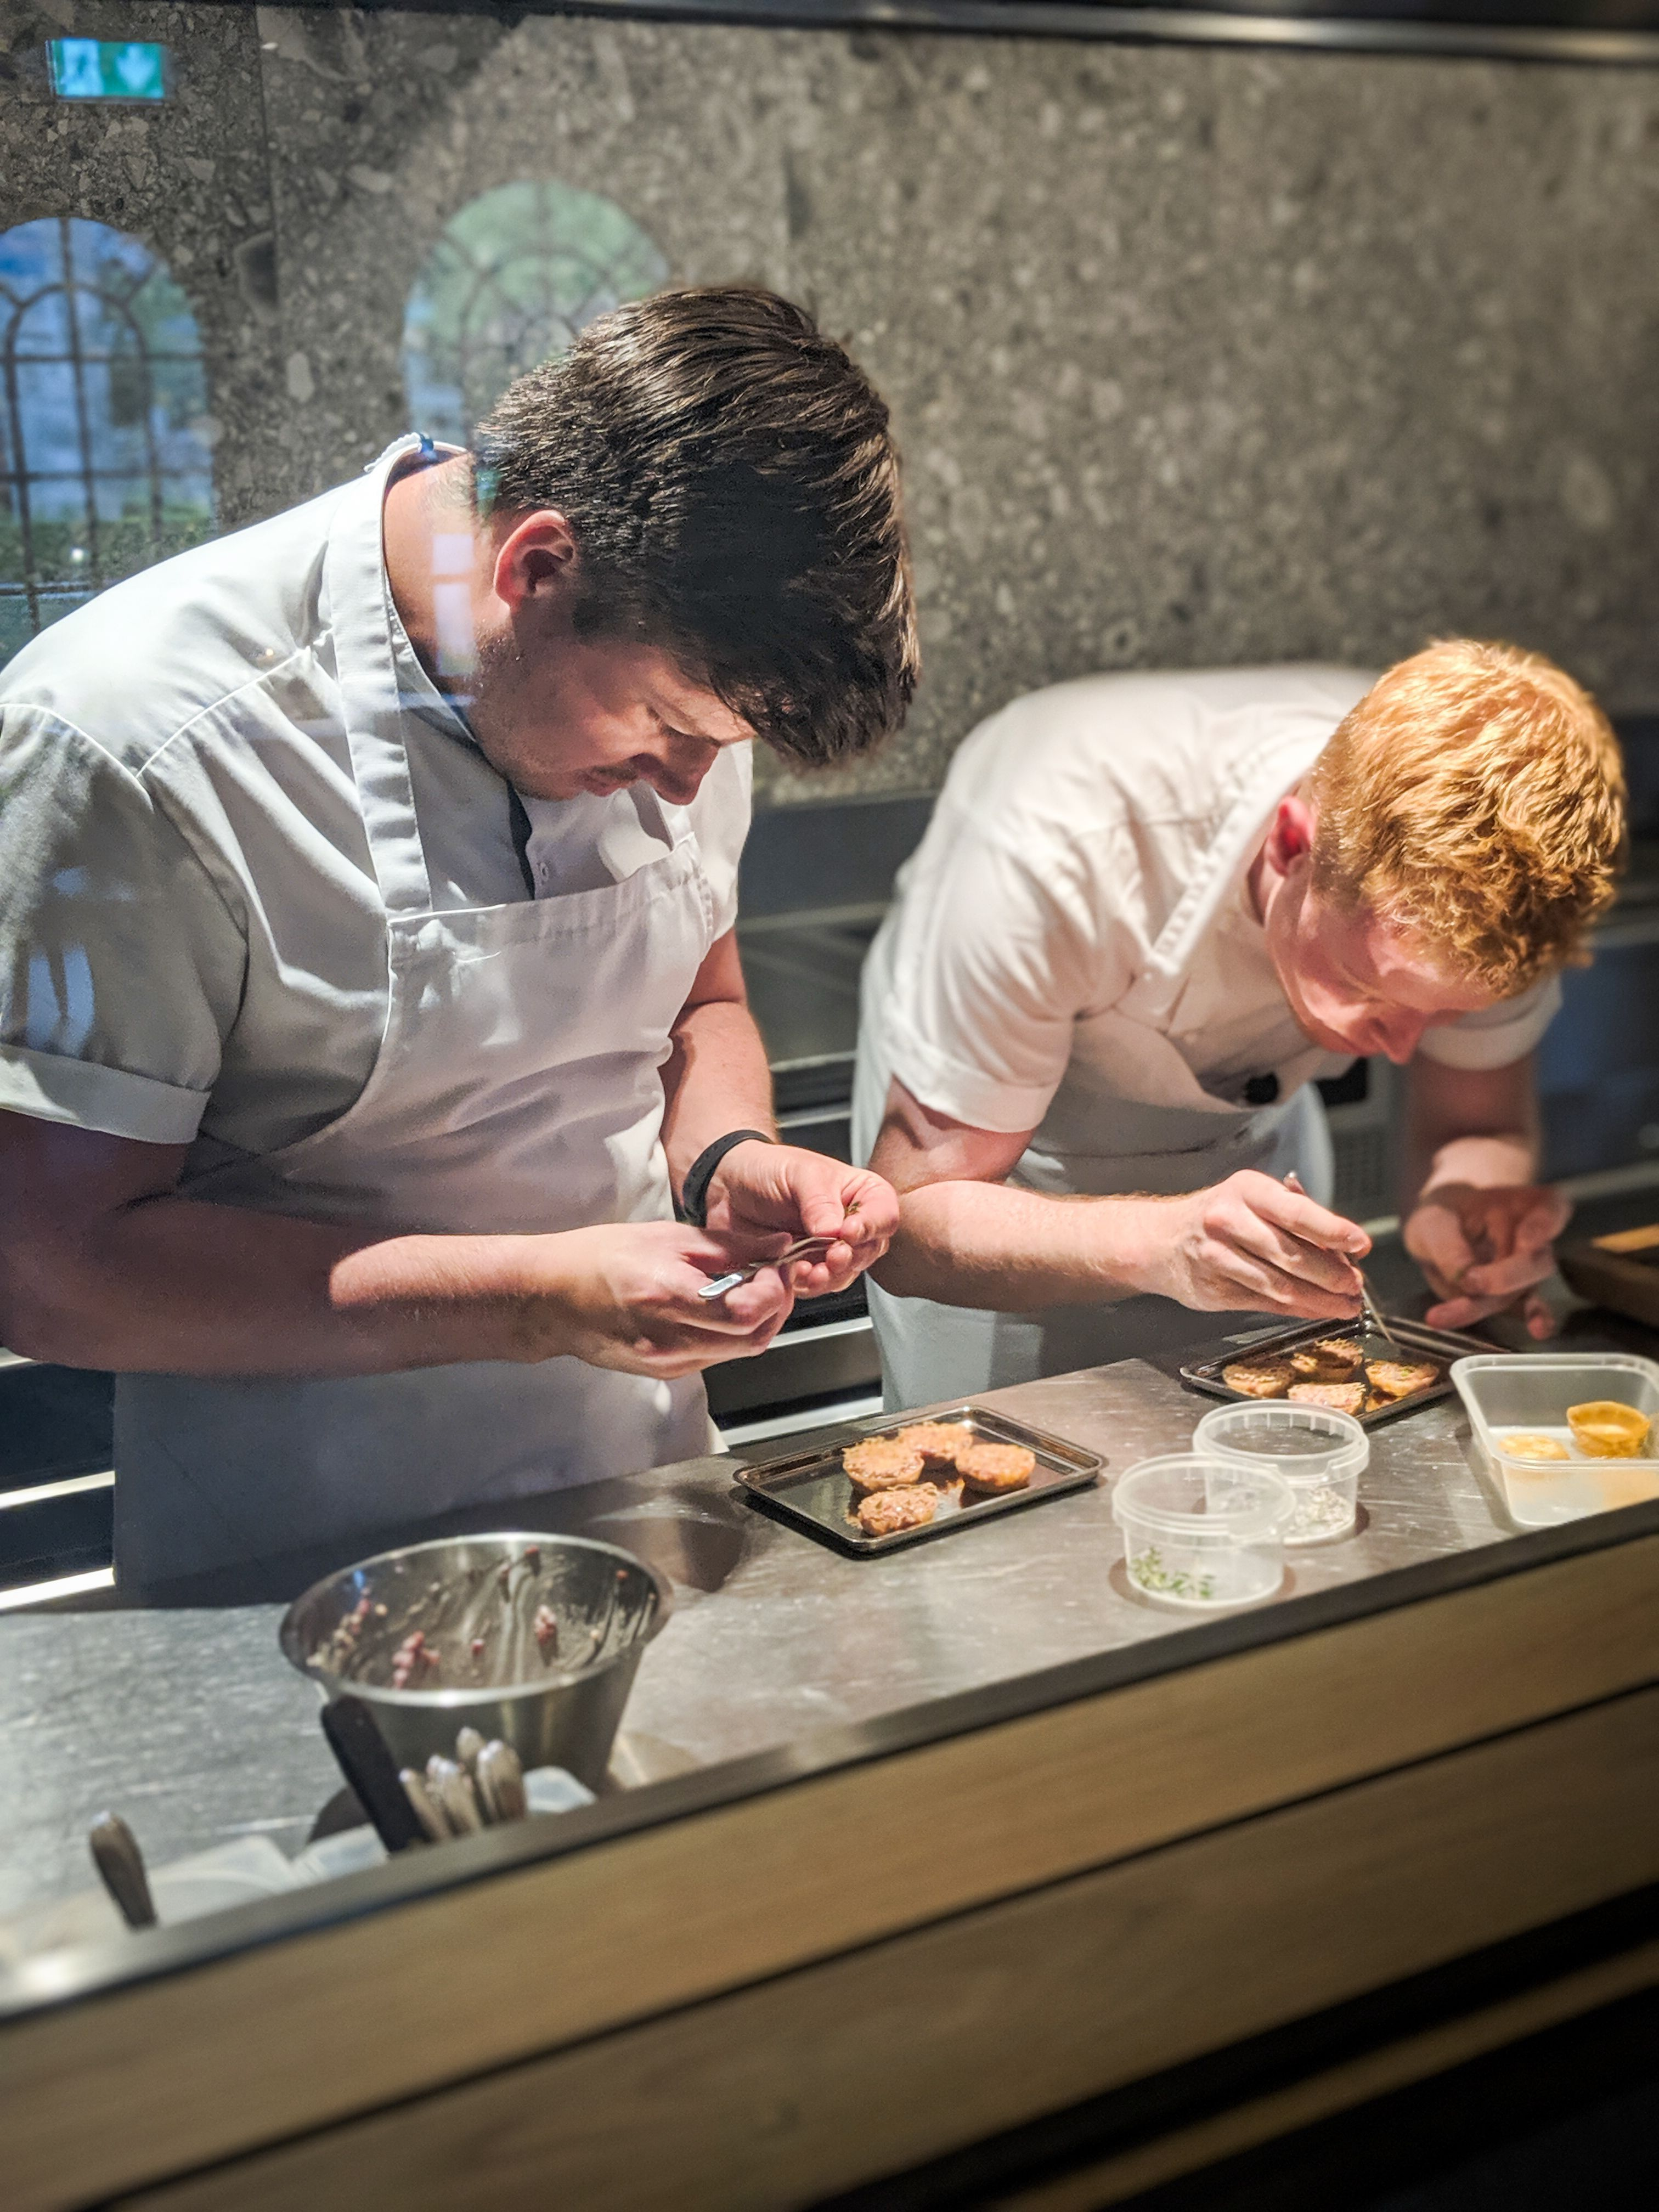 Jordan Bailey of Aimsir, pictured with Moriarty, was one of the chefs featured in last year's two-part special.